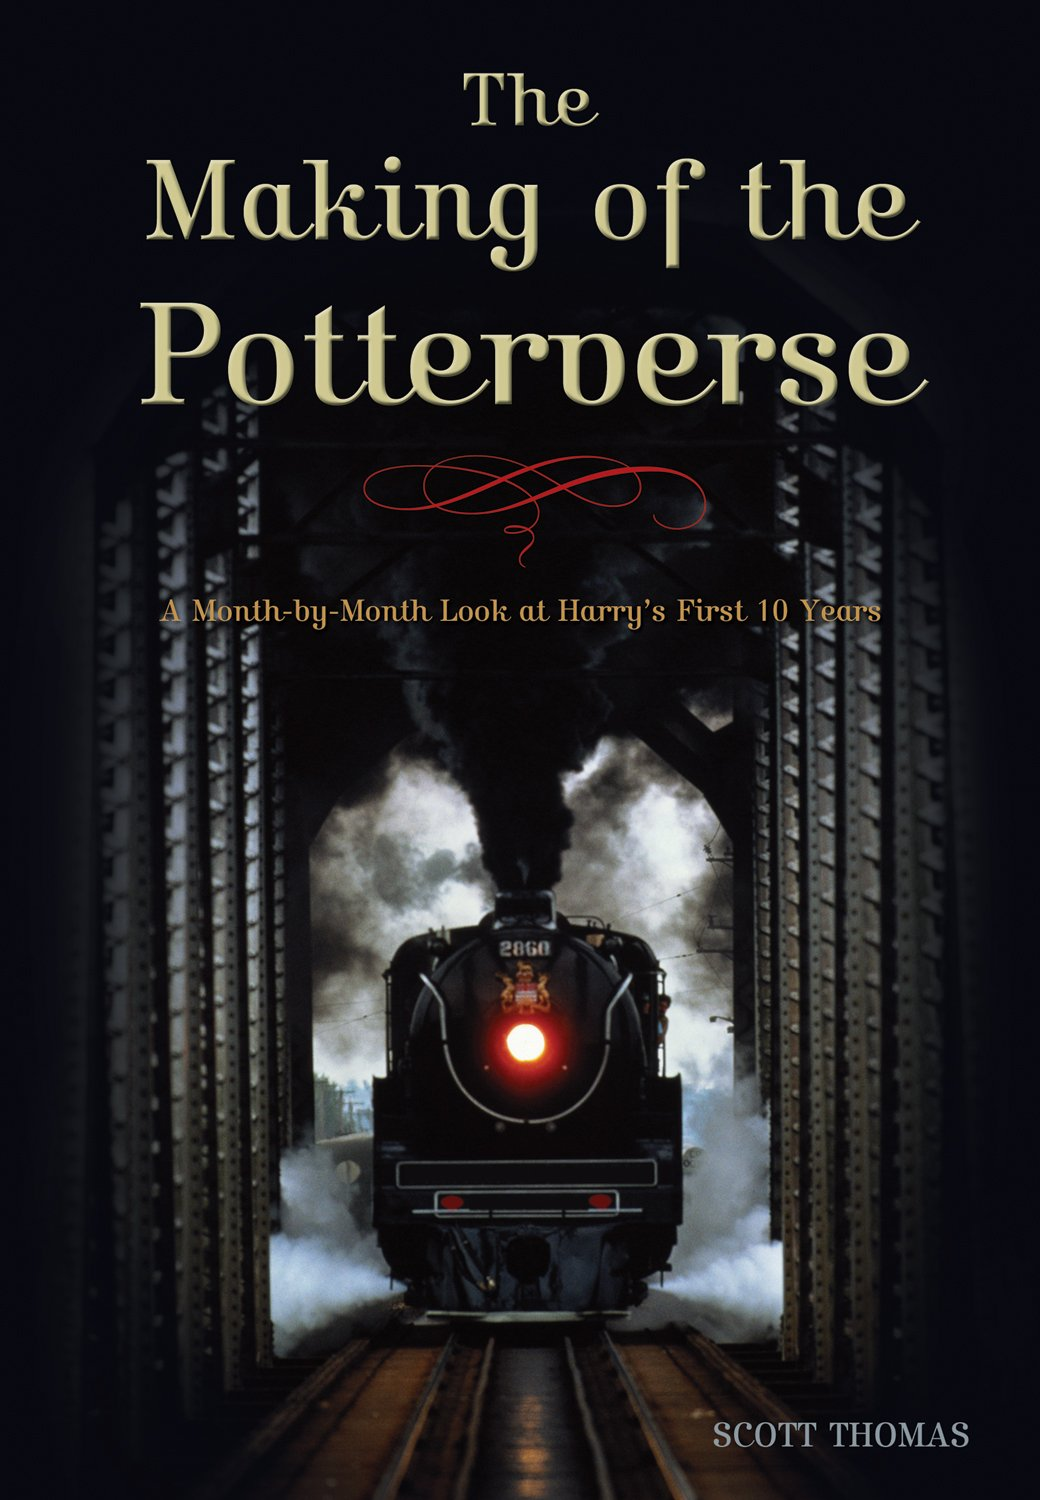 The Making of the Potterverse: A Month-By-Month Look at Harrys First 10 Years